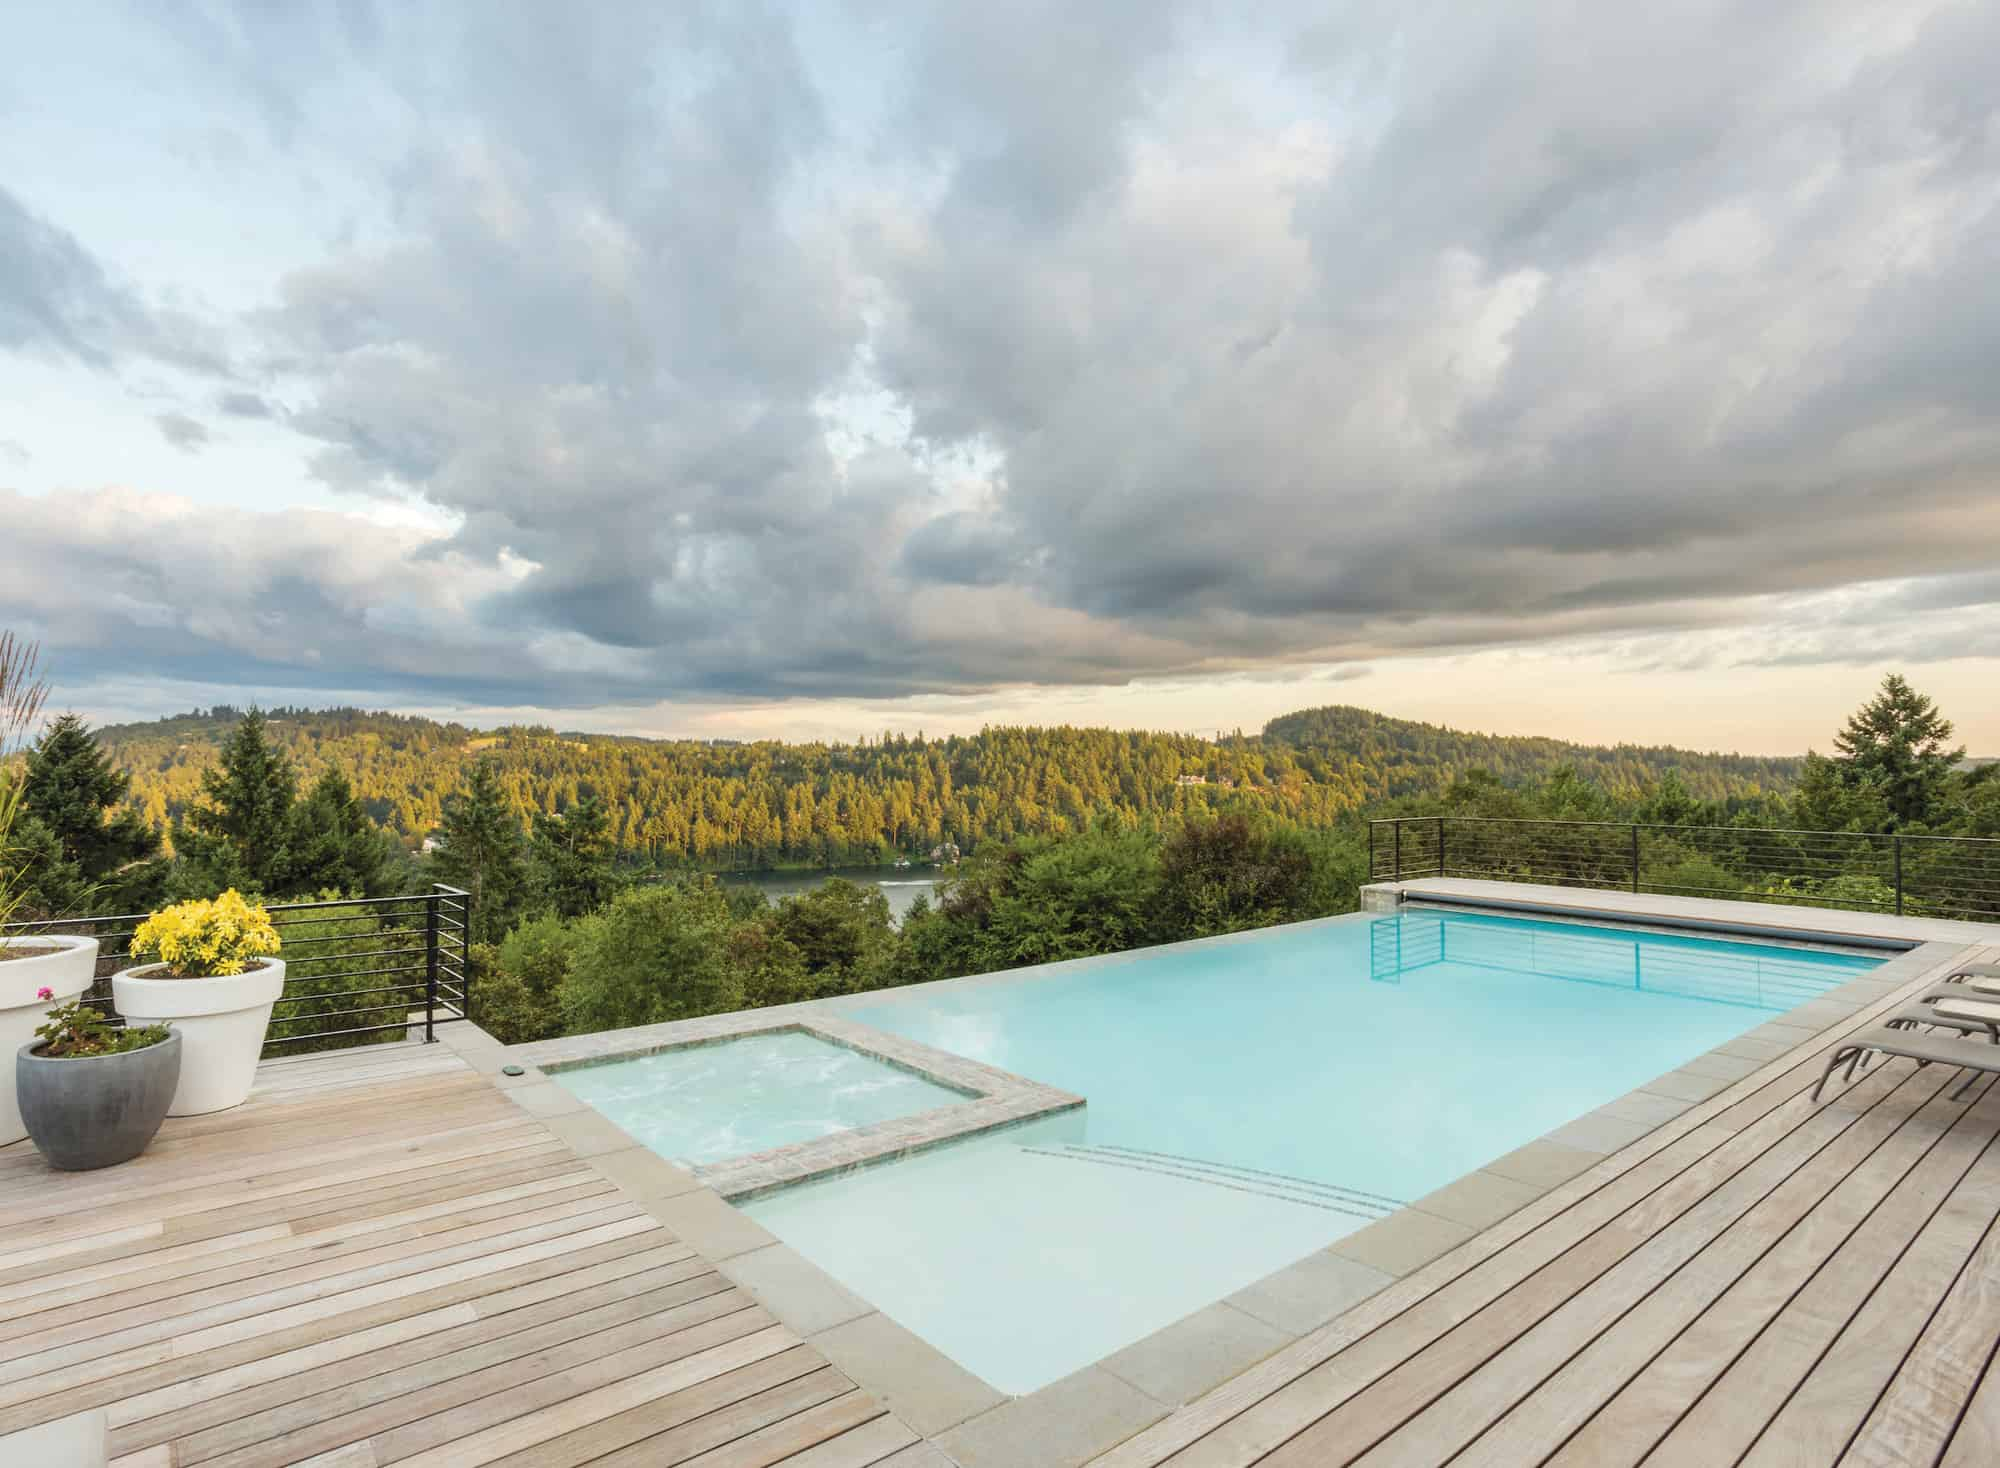 This infinity pool is positioned to reflect bright clouds passing over this Lake Oswego home on their way to Mount Hood.